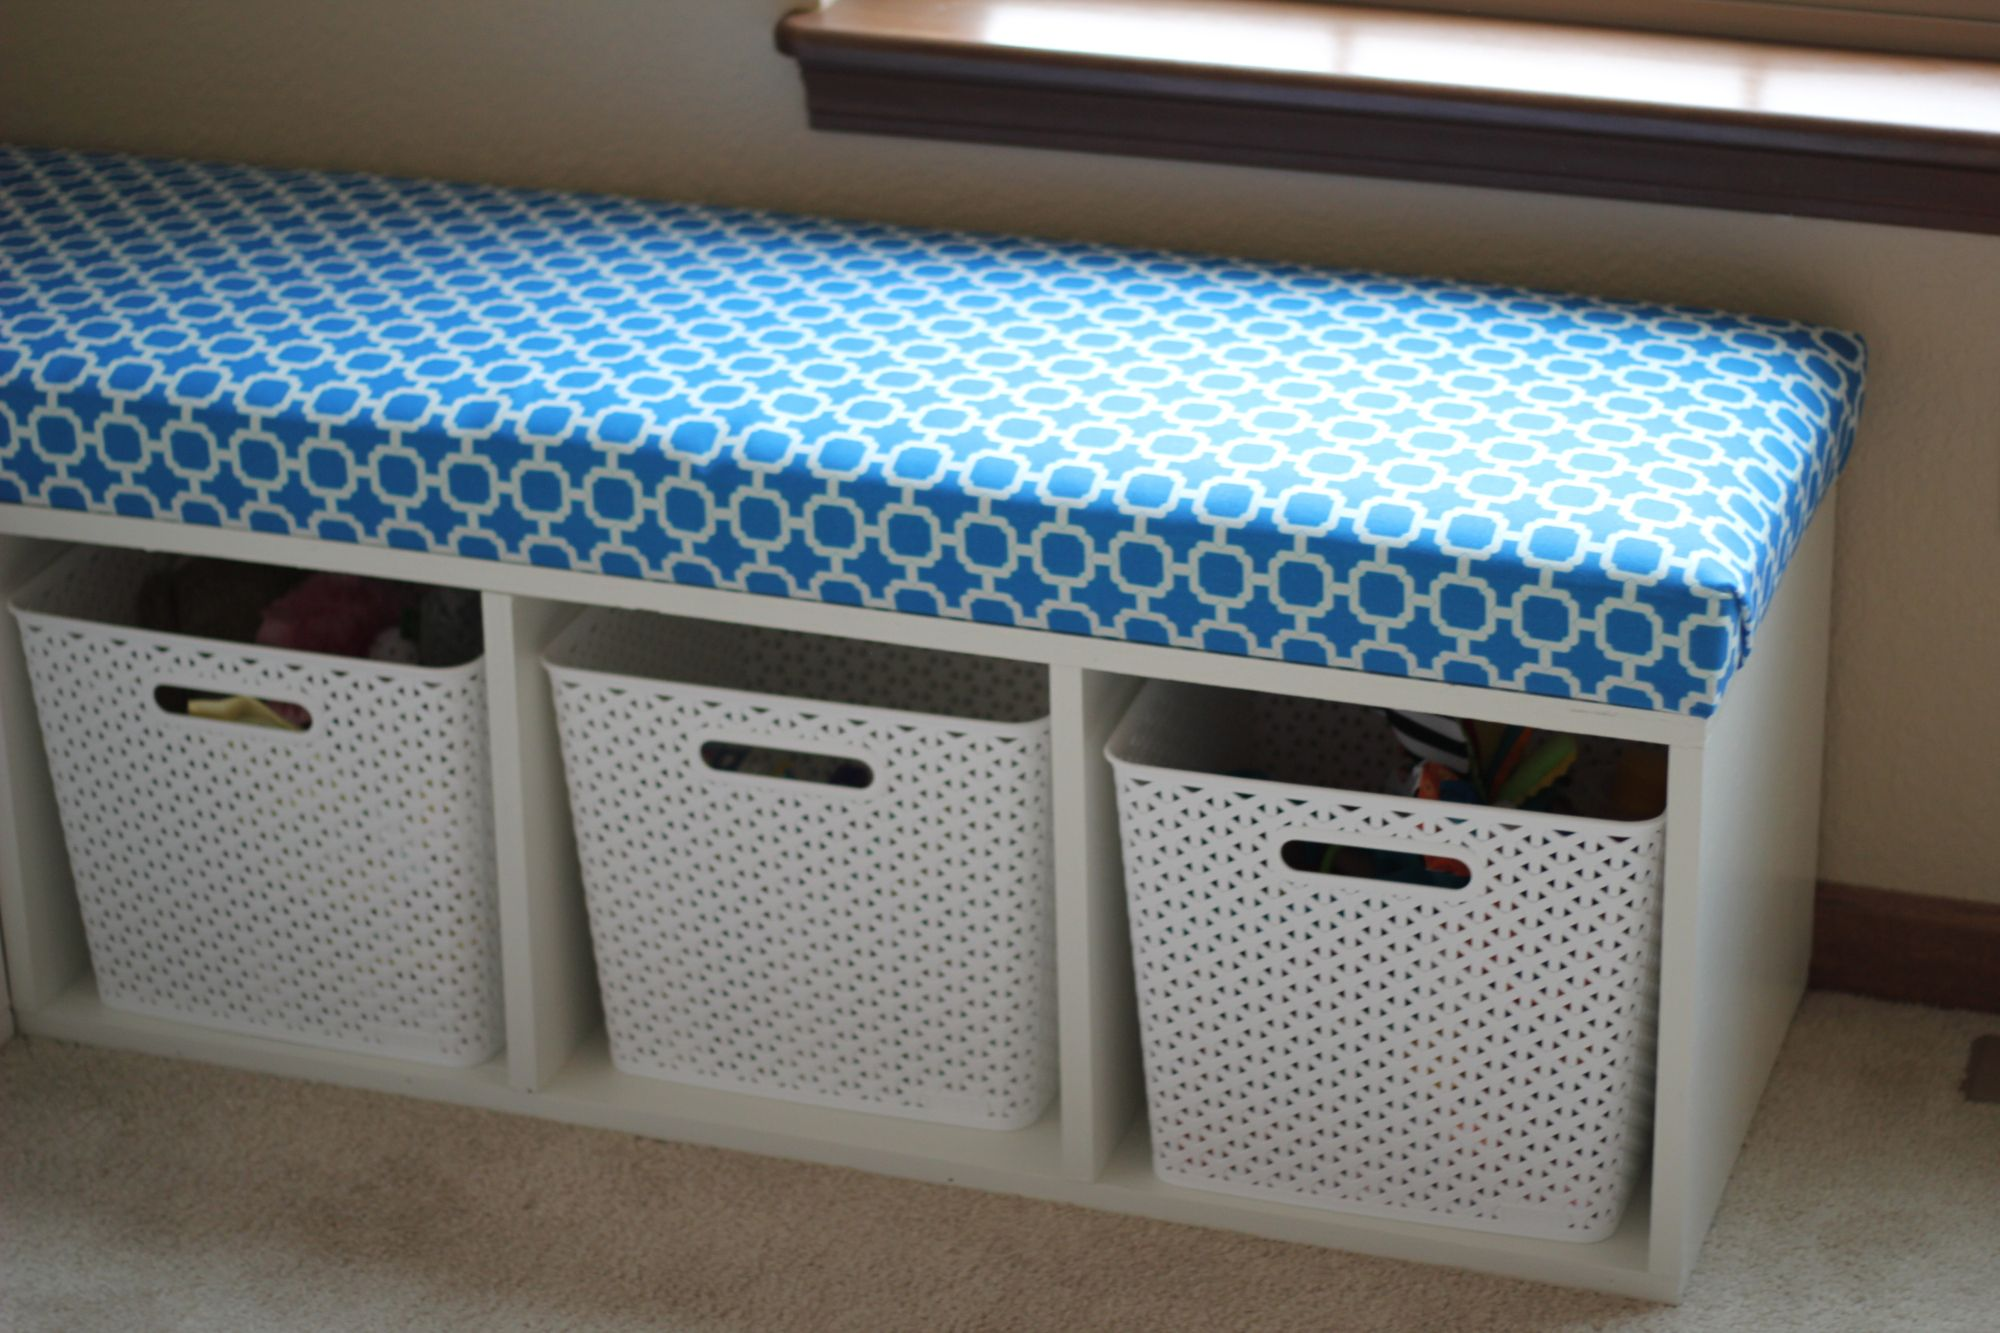 Playroom Project: Part Three (With images) | Home diy, Diy ...